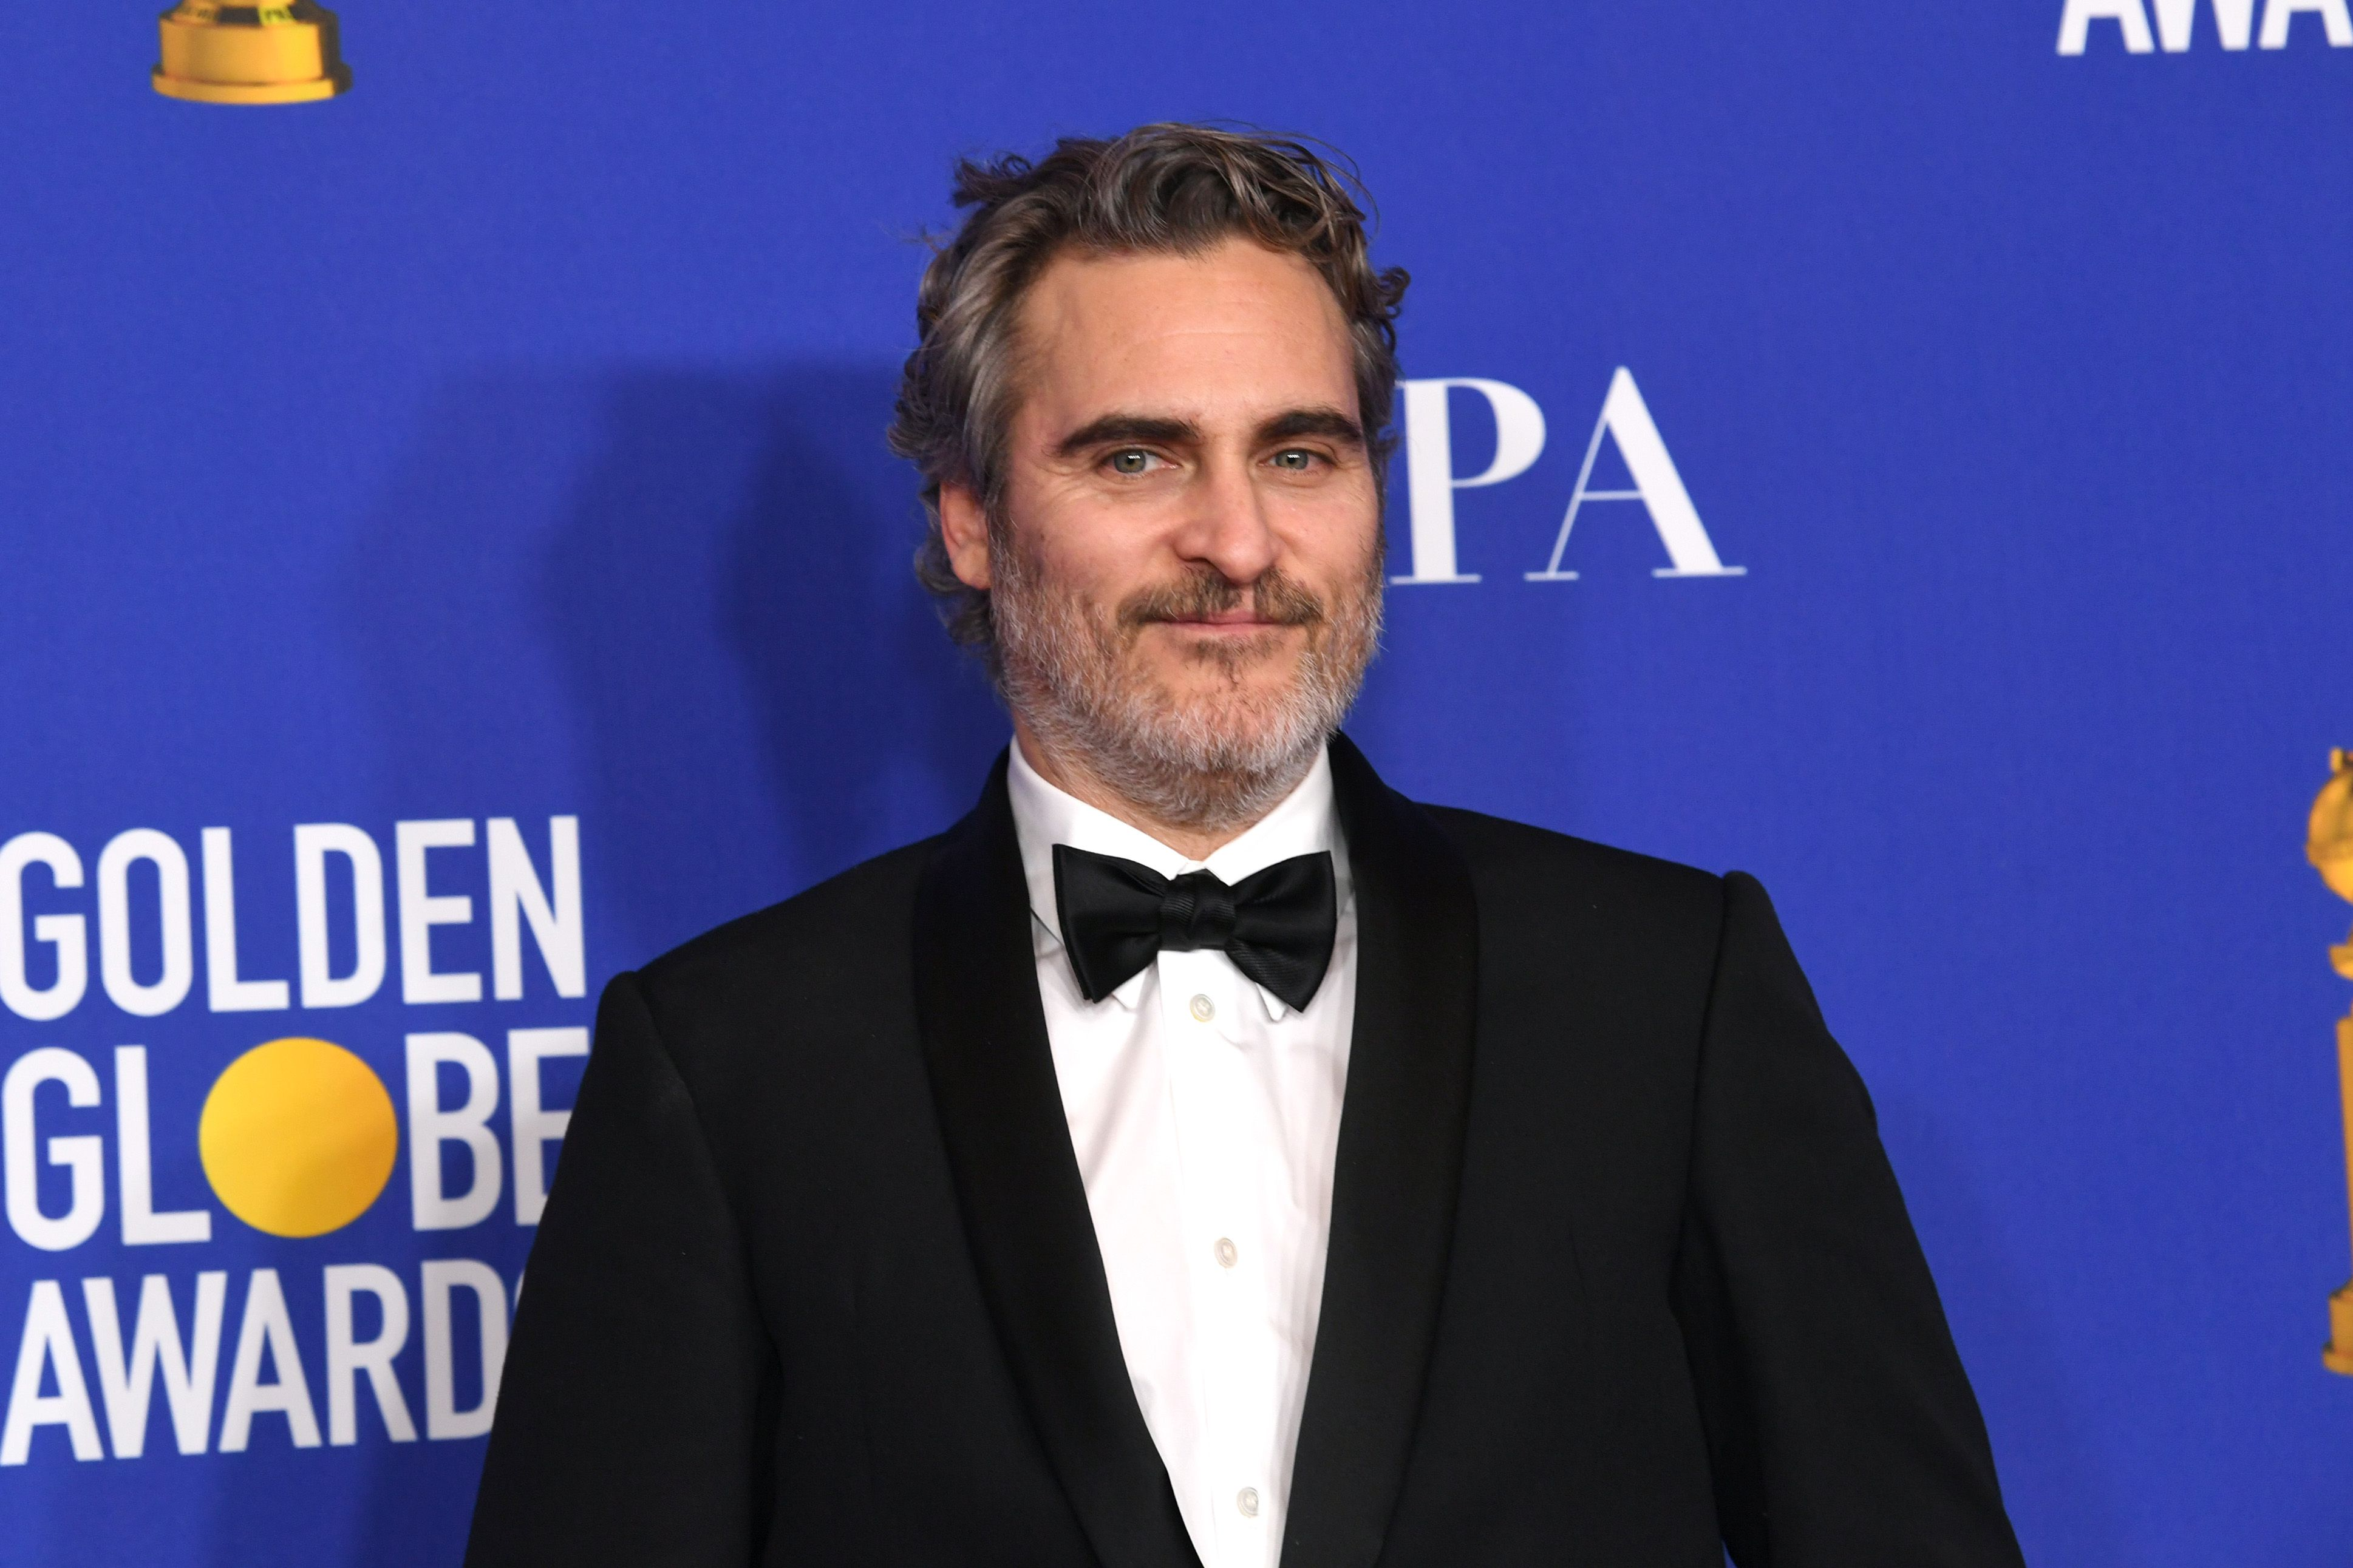 Joaquin Phoenix looks amazing in black suit and white inner T-shirt with a quirky smile on his face